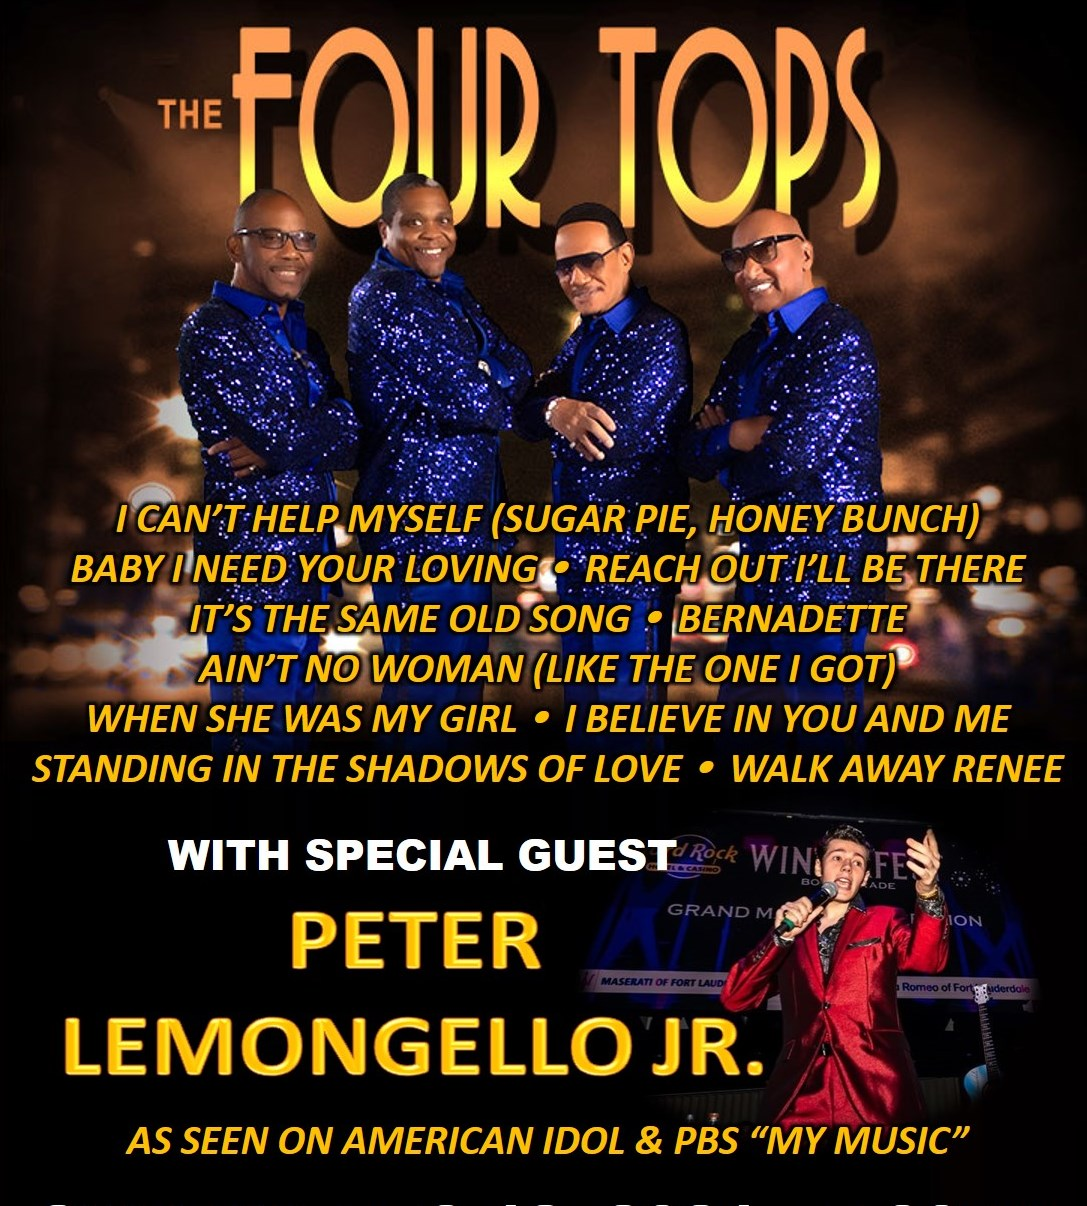 Willjam Productions Presents The Four Tops With Special Guest Peter Lemongello, Jr.